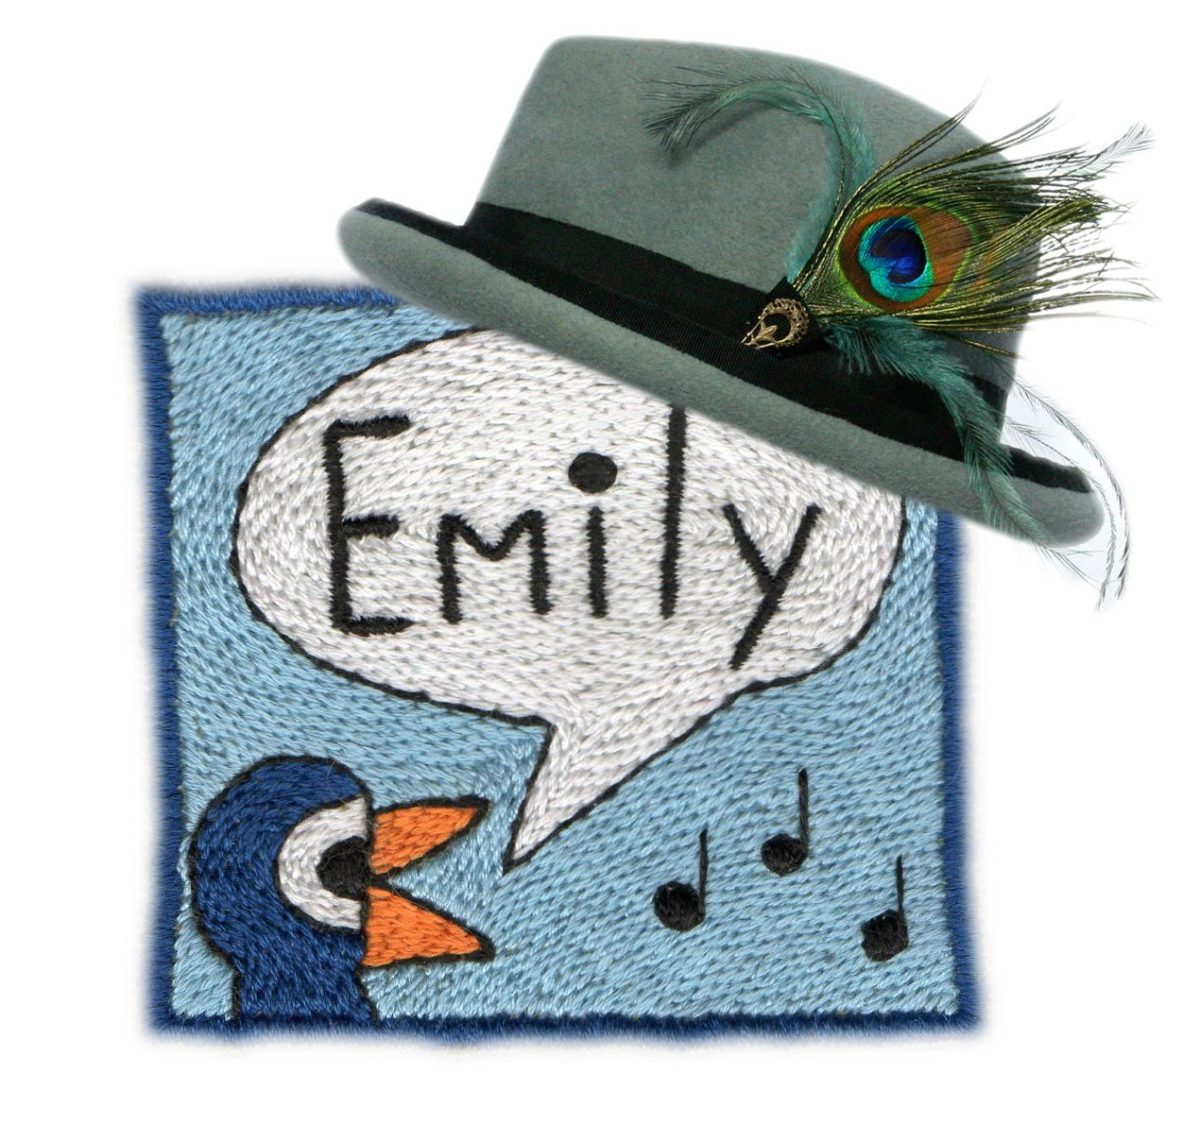 Millinery Operations – Introducing Your Host, Emily Moe!